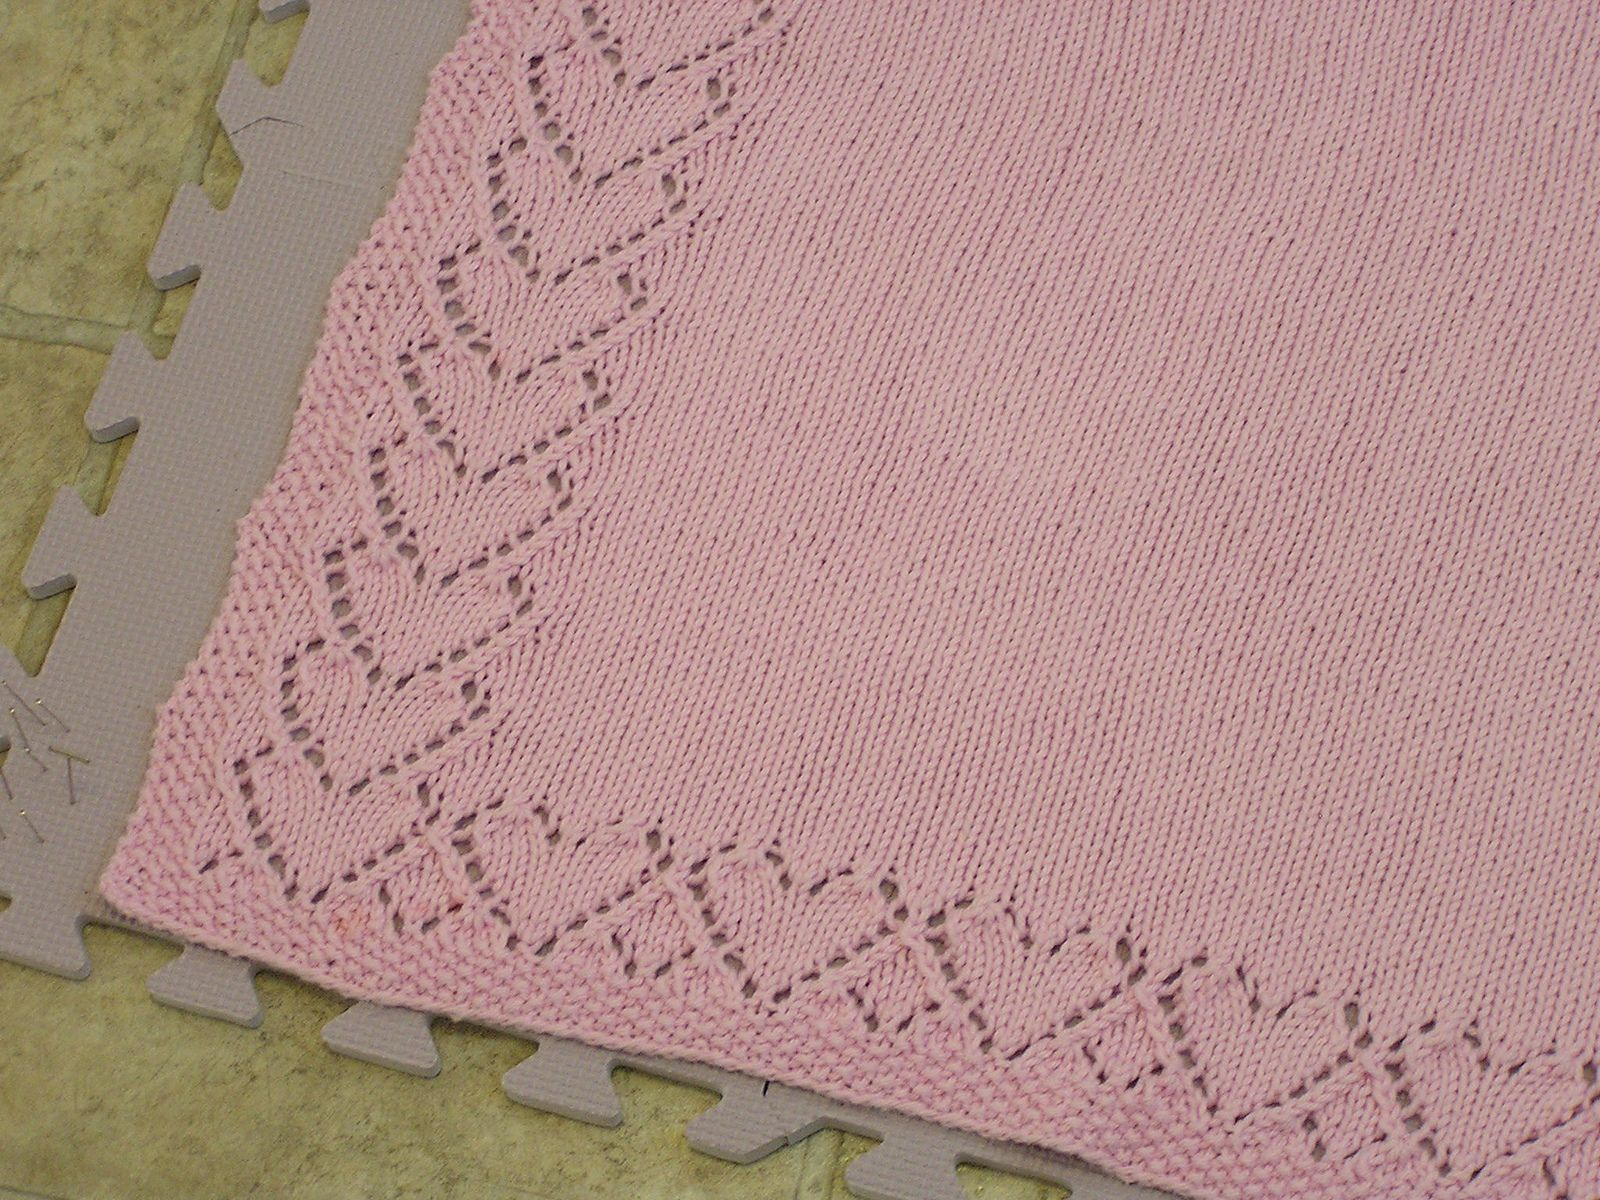 Baby blanket made with a lace heart motif and seed stitch border ...